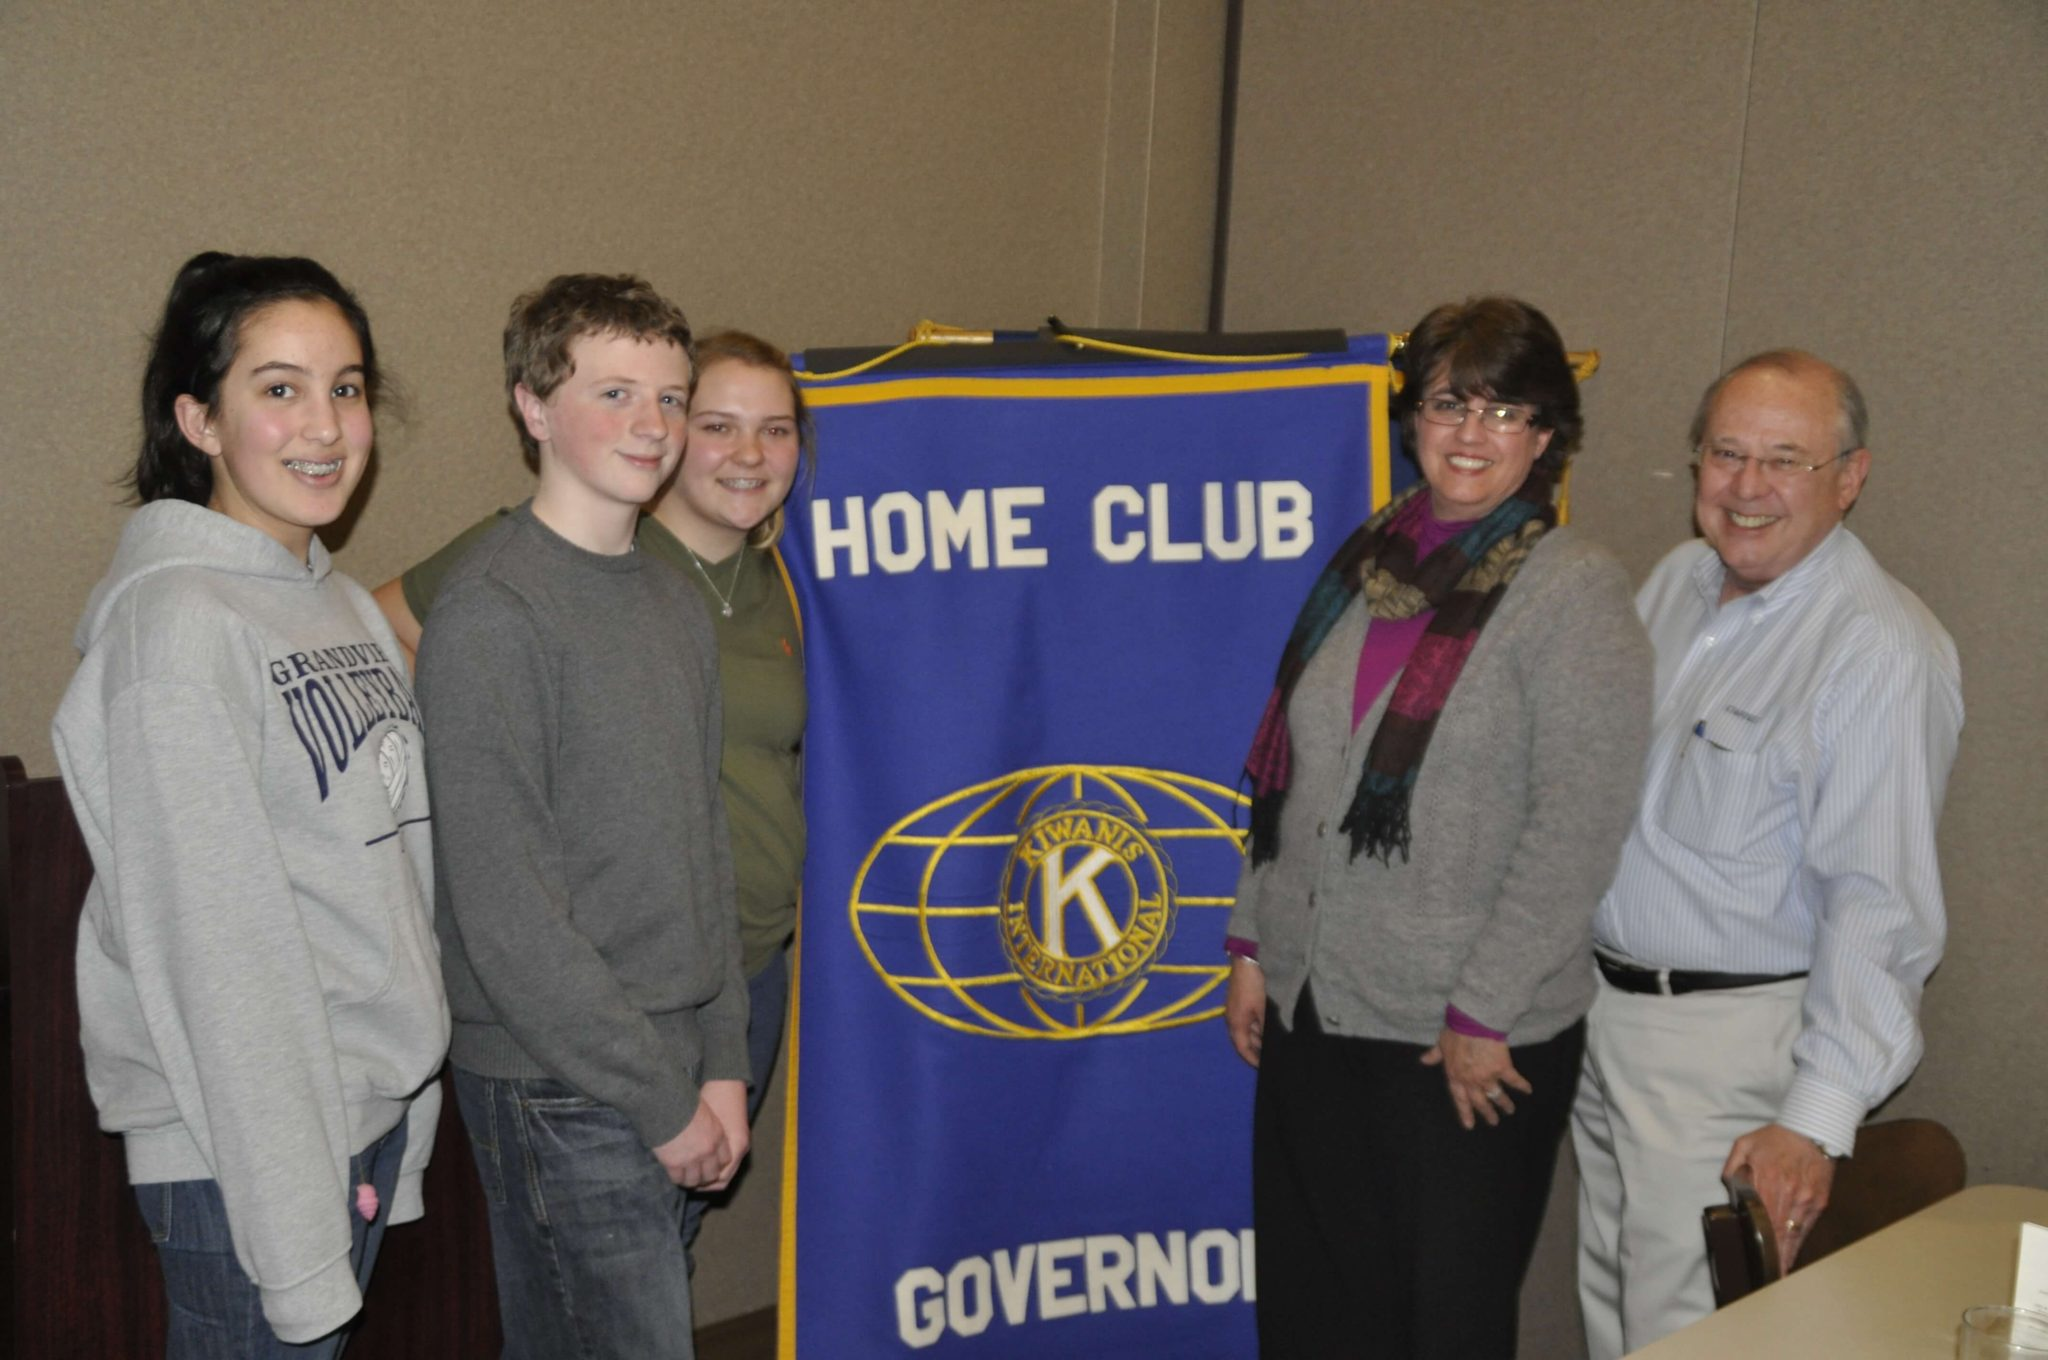 Mary Emma Macleod Glenn Chaney And Ana Kahle Attended The Feb 7 Board Meeting To Request